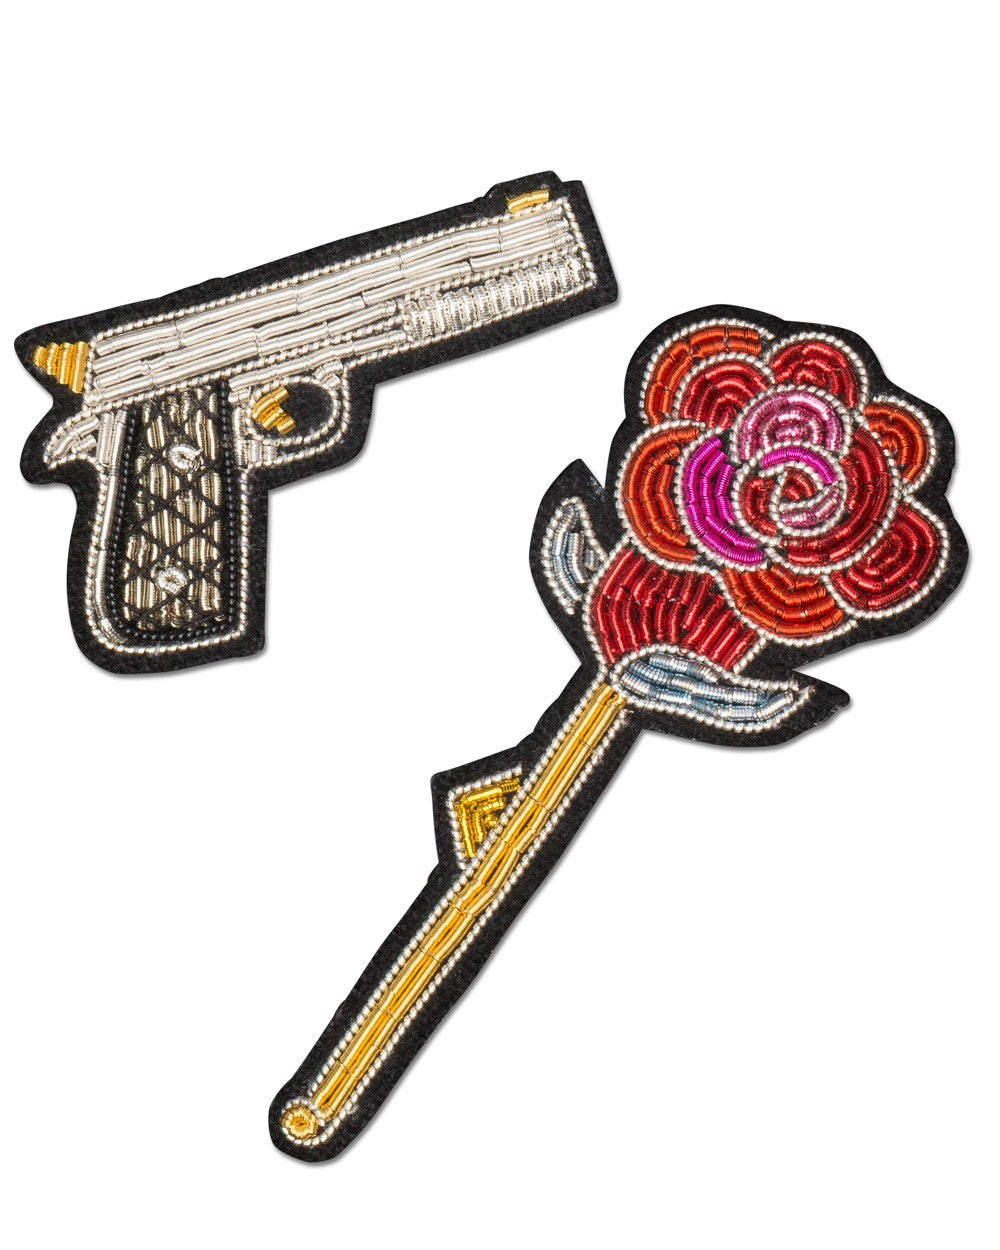 Macon Lesquoy Stickbroschen Set Of 2 Gun And Rose - Main Image